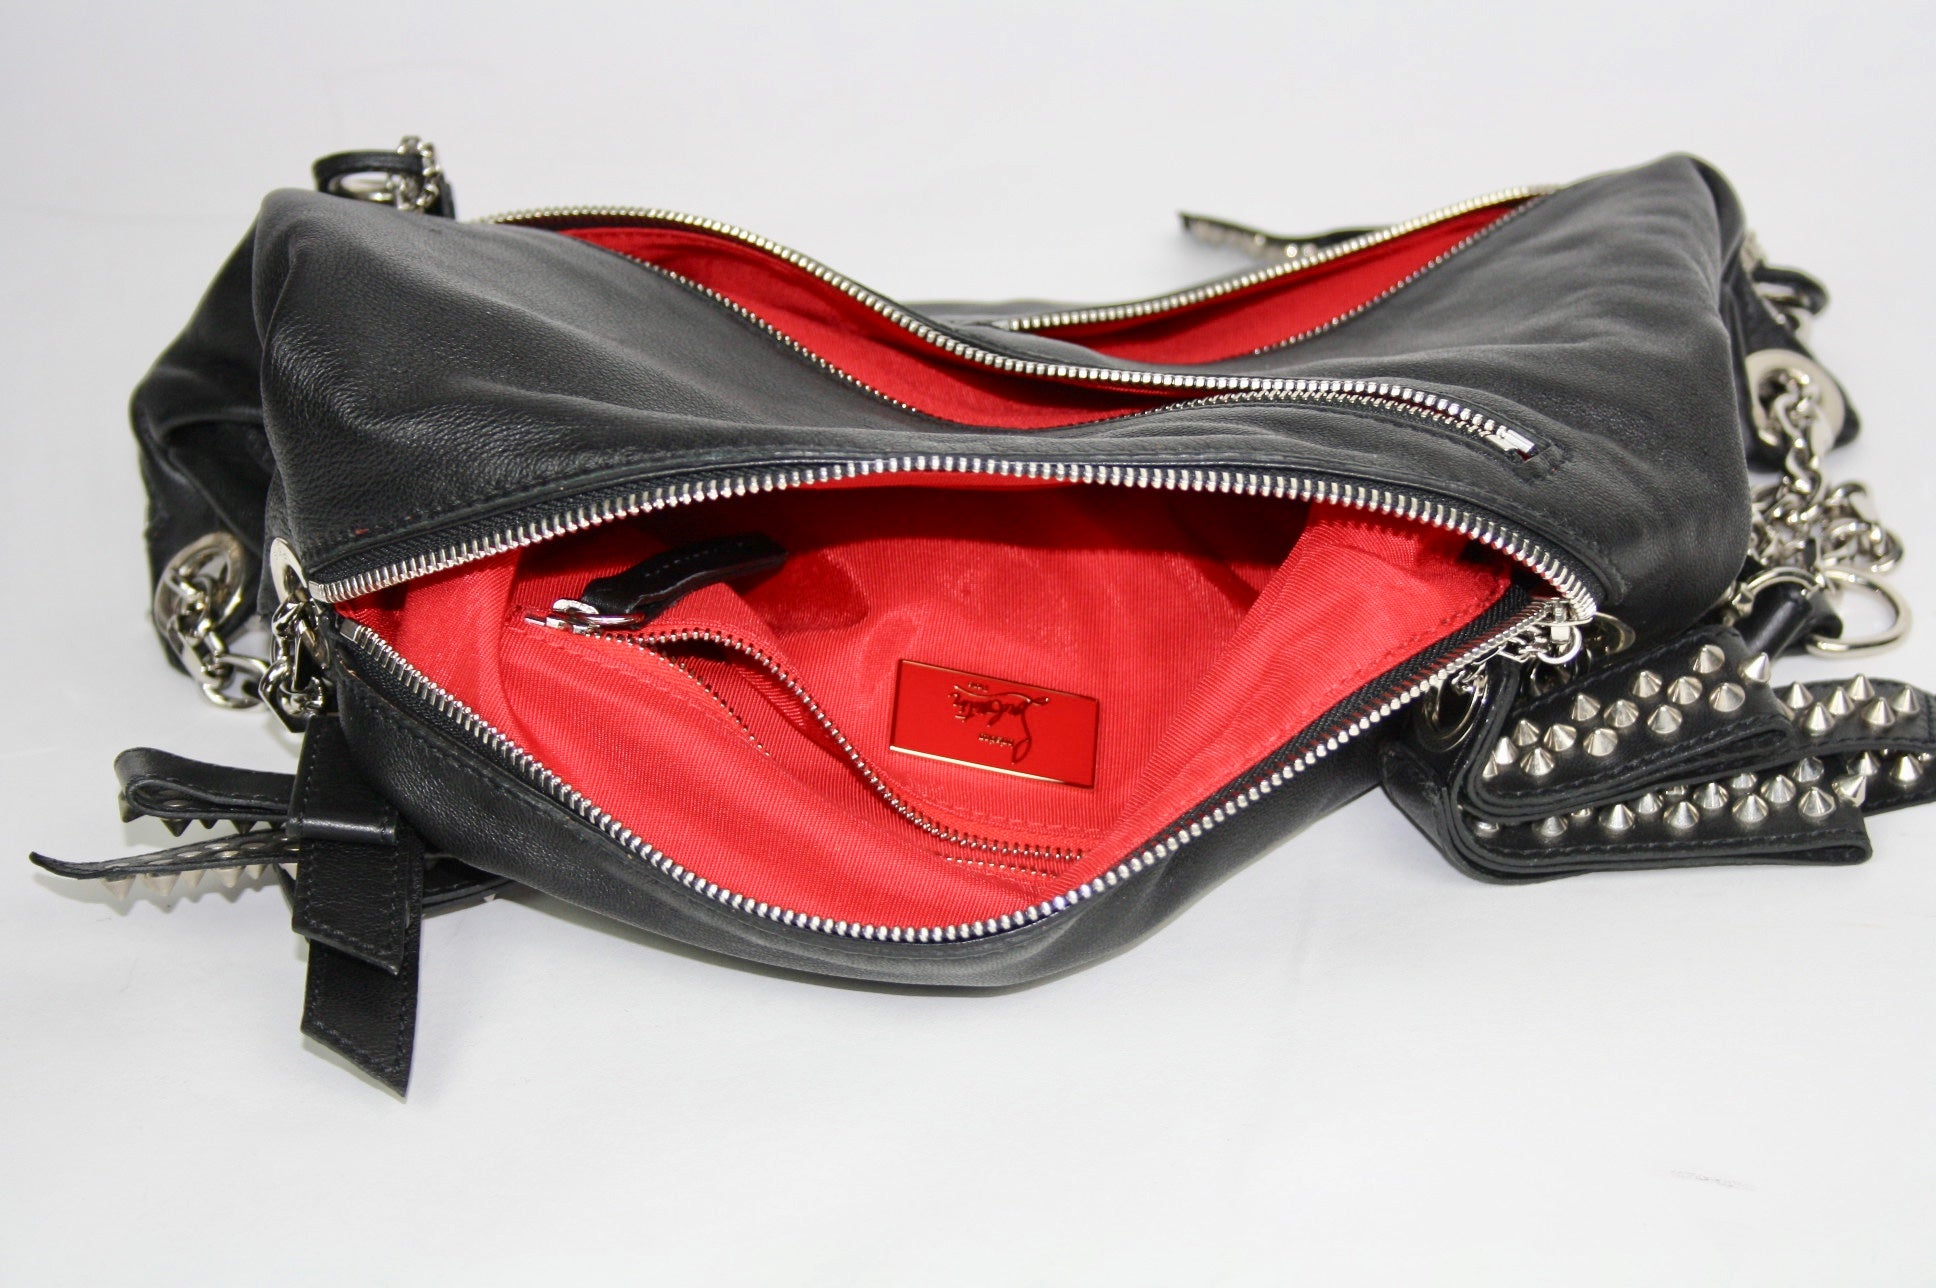 Christian Louboutin Trophe bag - Iconics Preloved Luxury